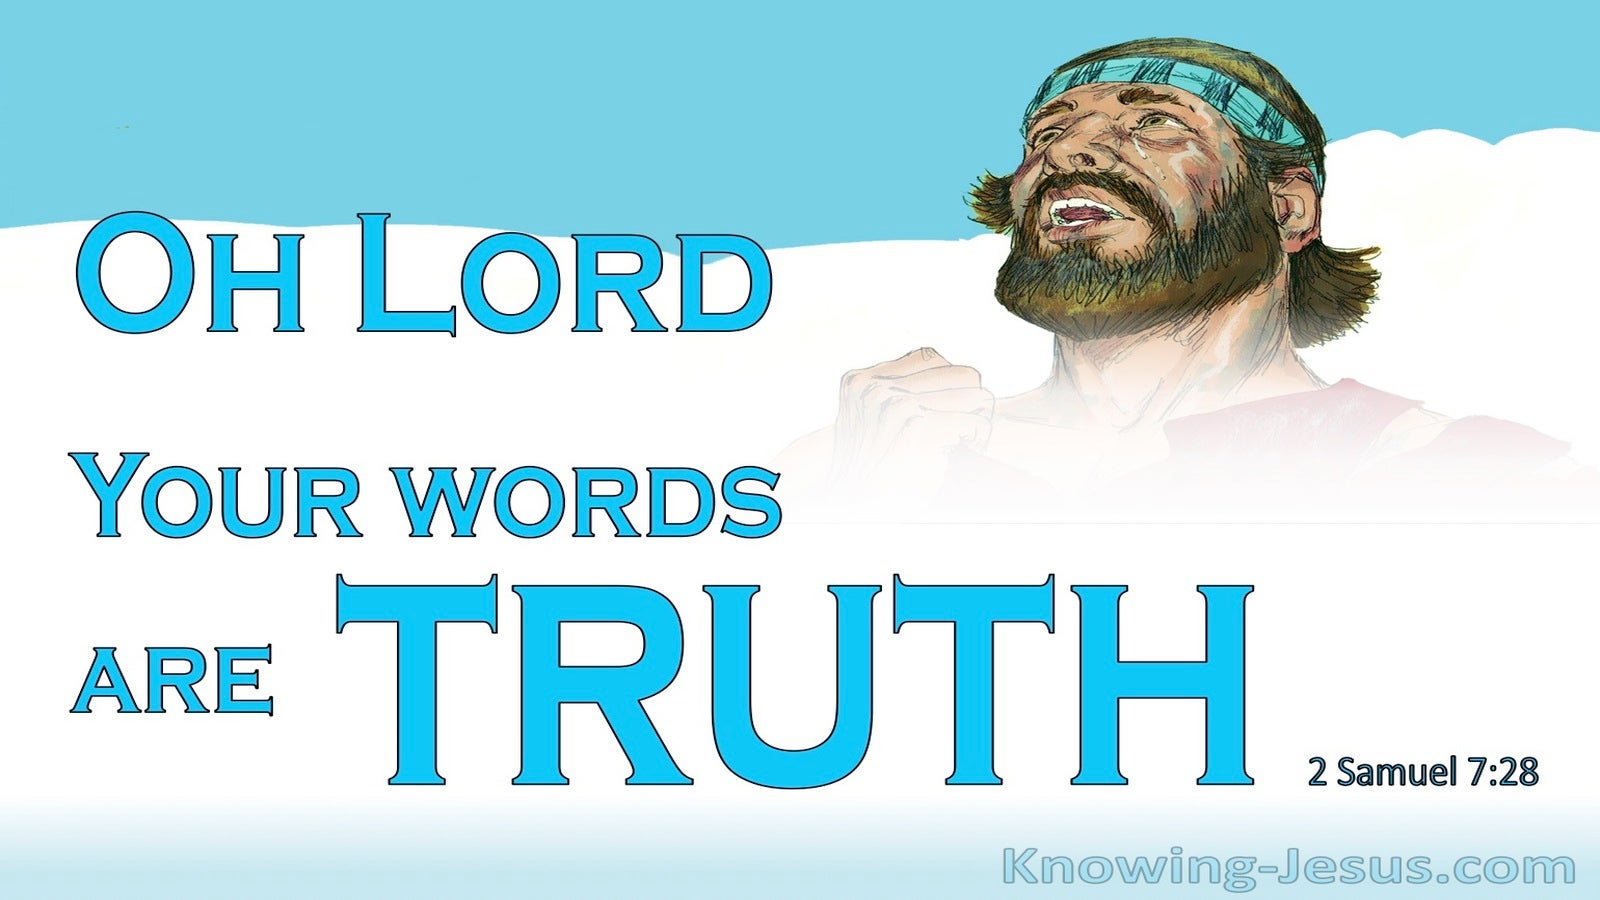 2 Samuel 7:28 You Are God Your Words Are Truth (blue)